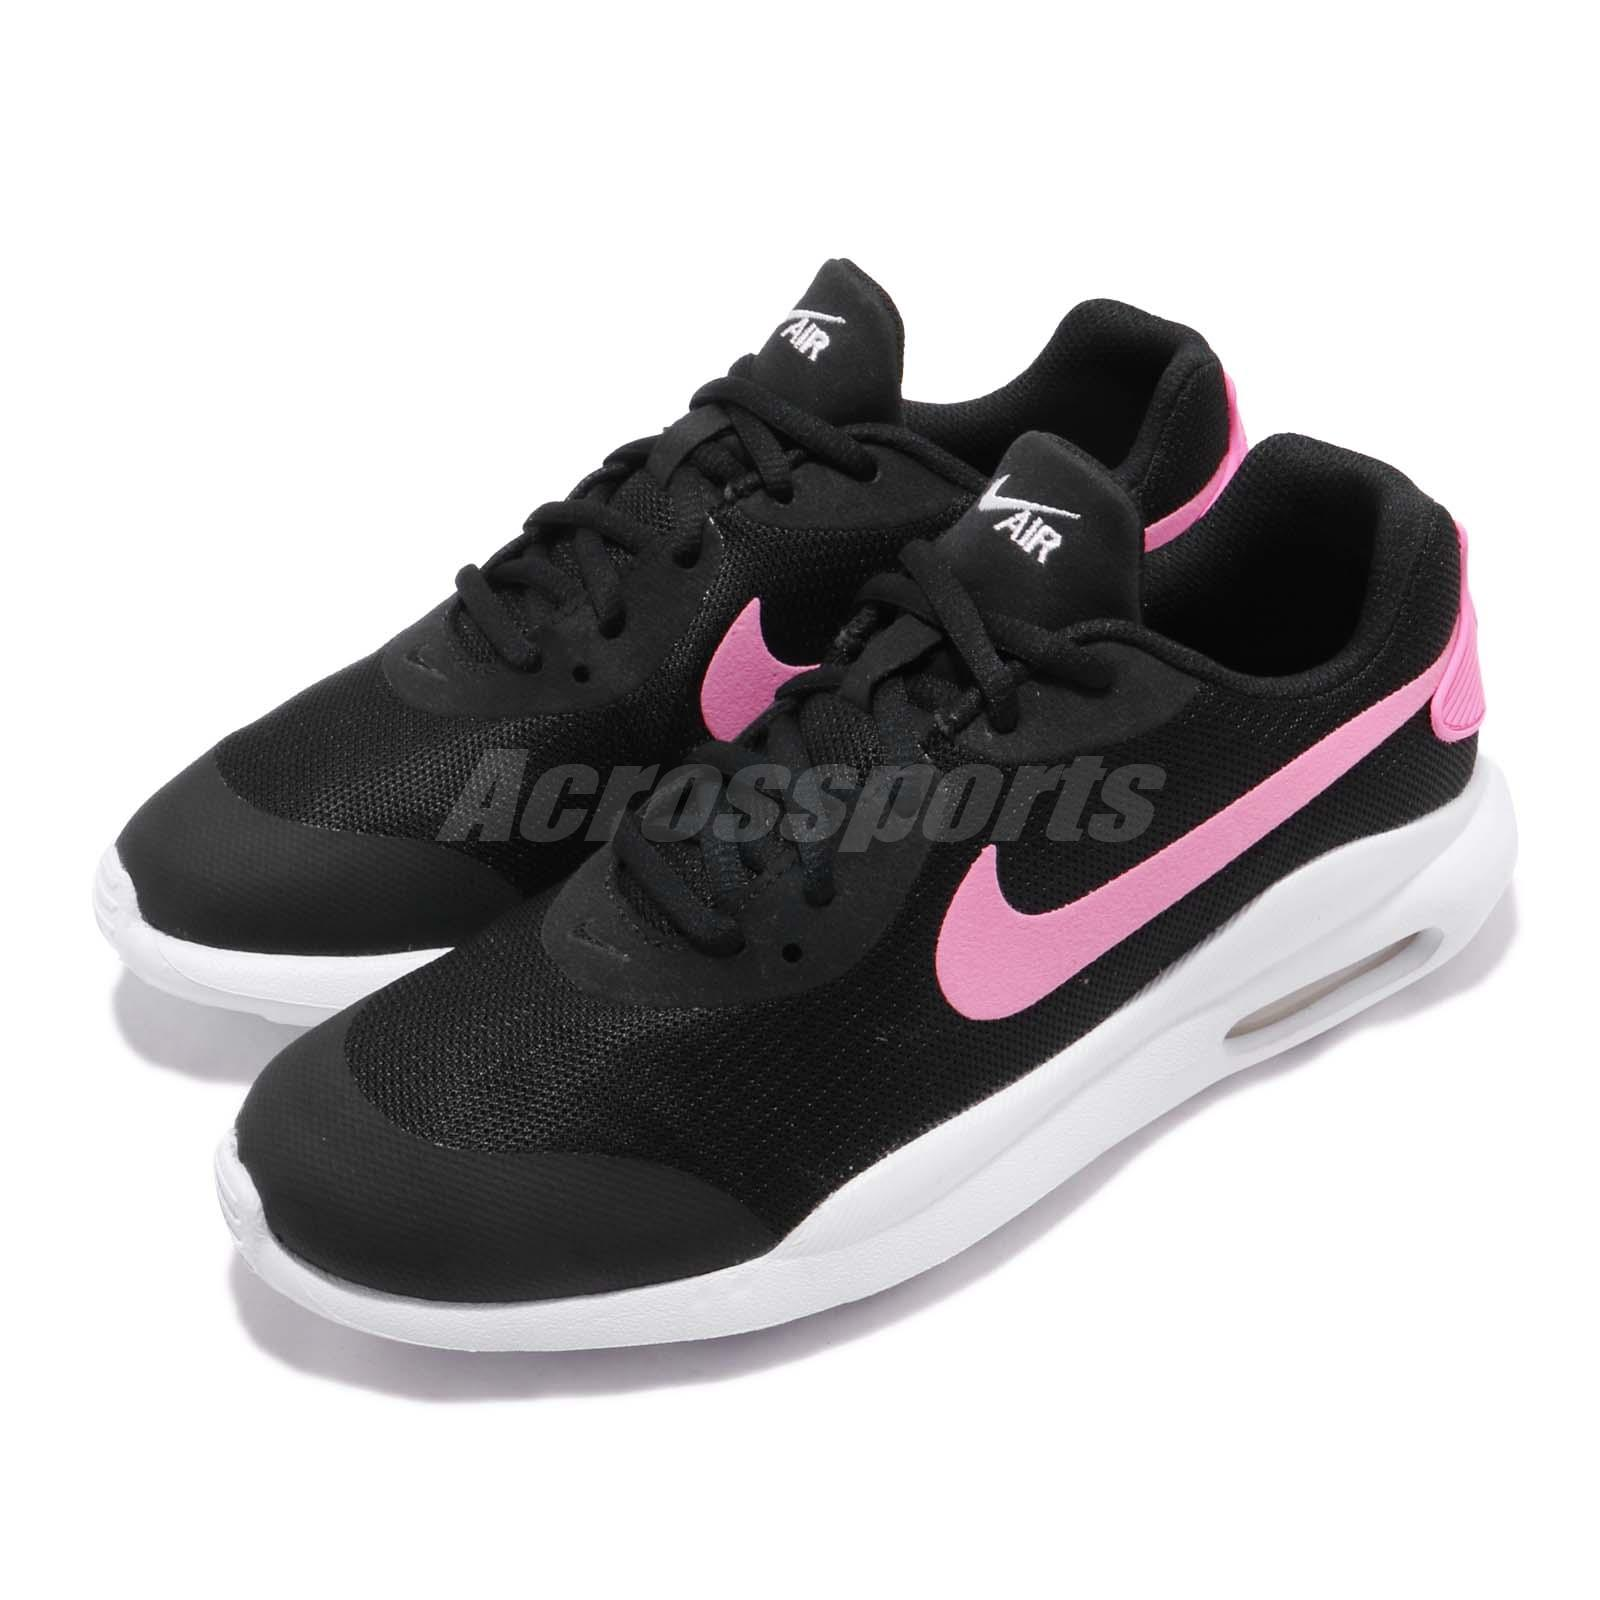 detailed look d0238 7afdf Details about Nike Air Max Oketo GS Black Pink White Kid Women Running Shoe  Sneaker AR7423-001